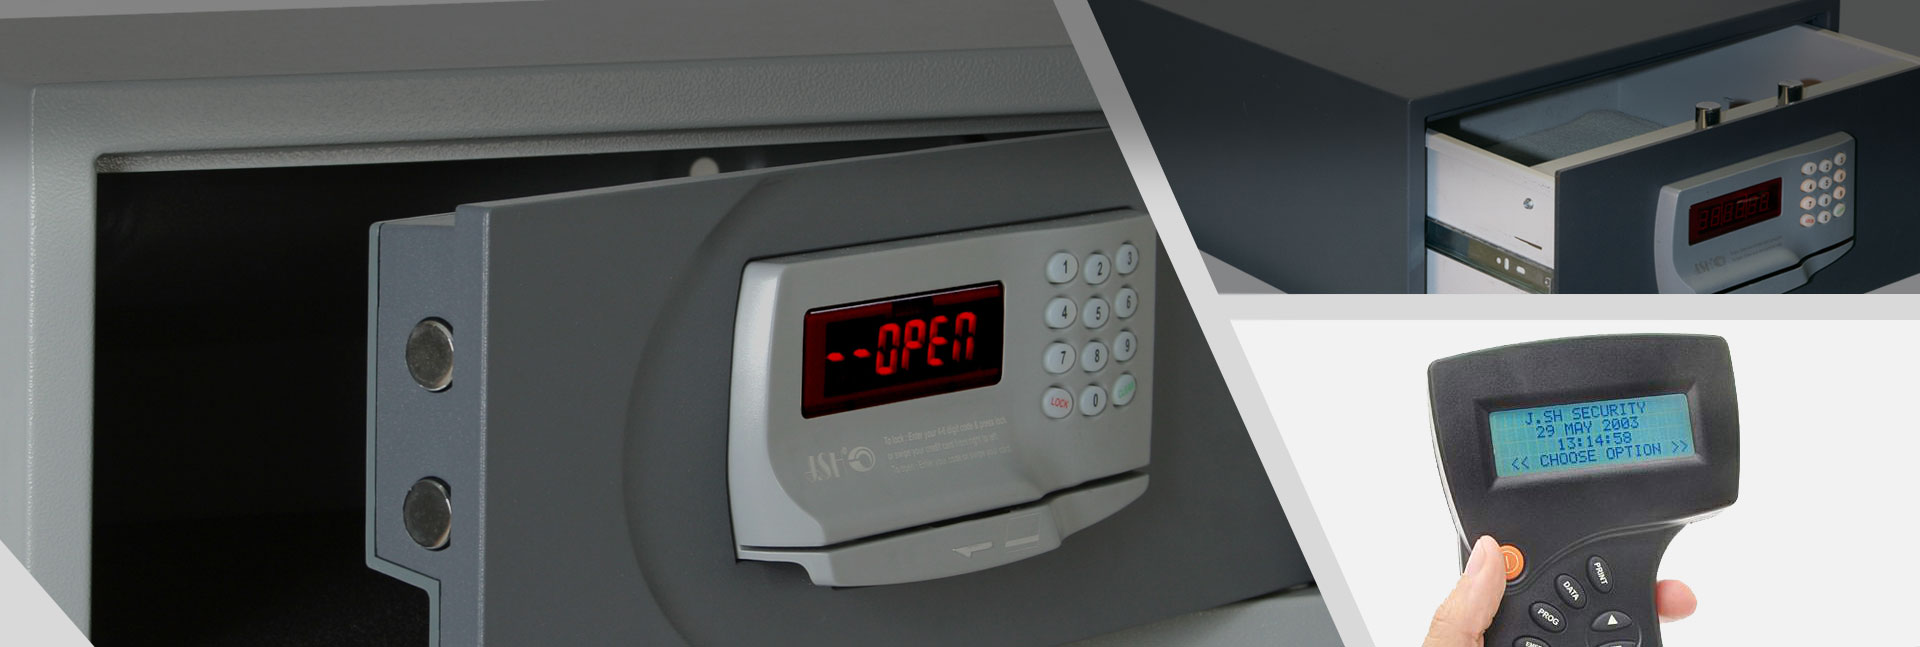 Our Electronic Safes Products: